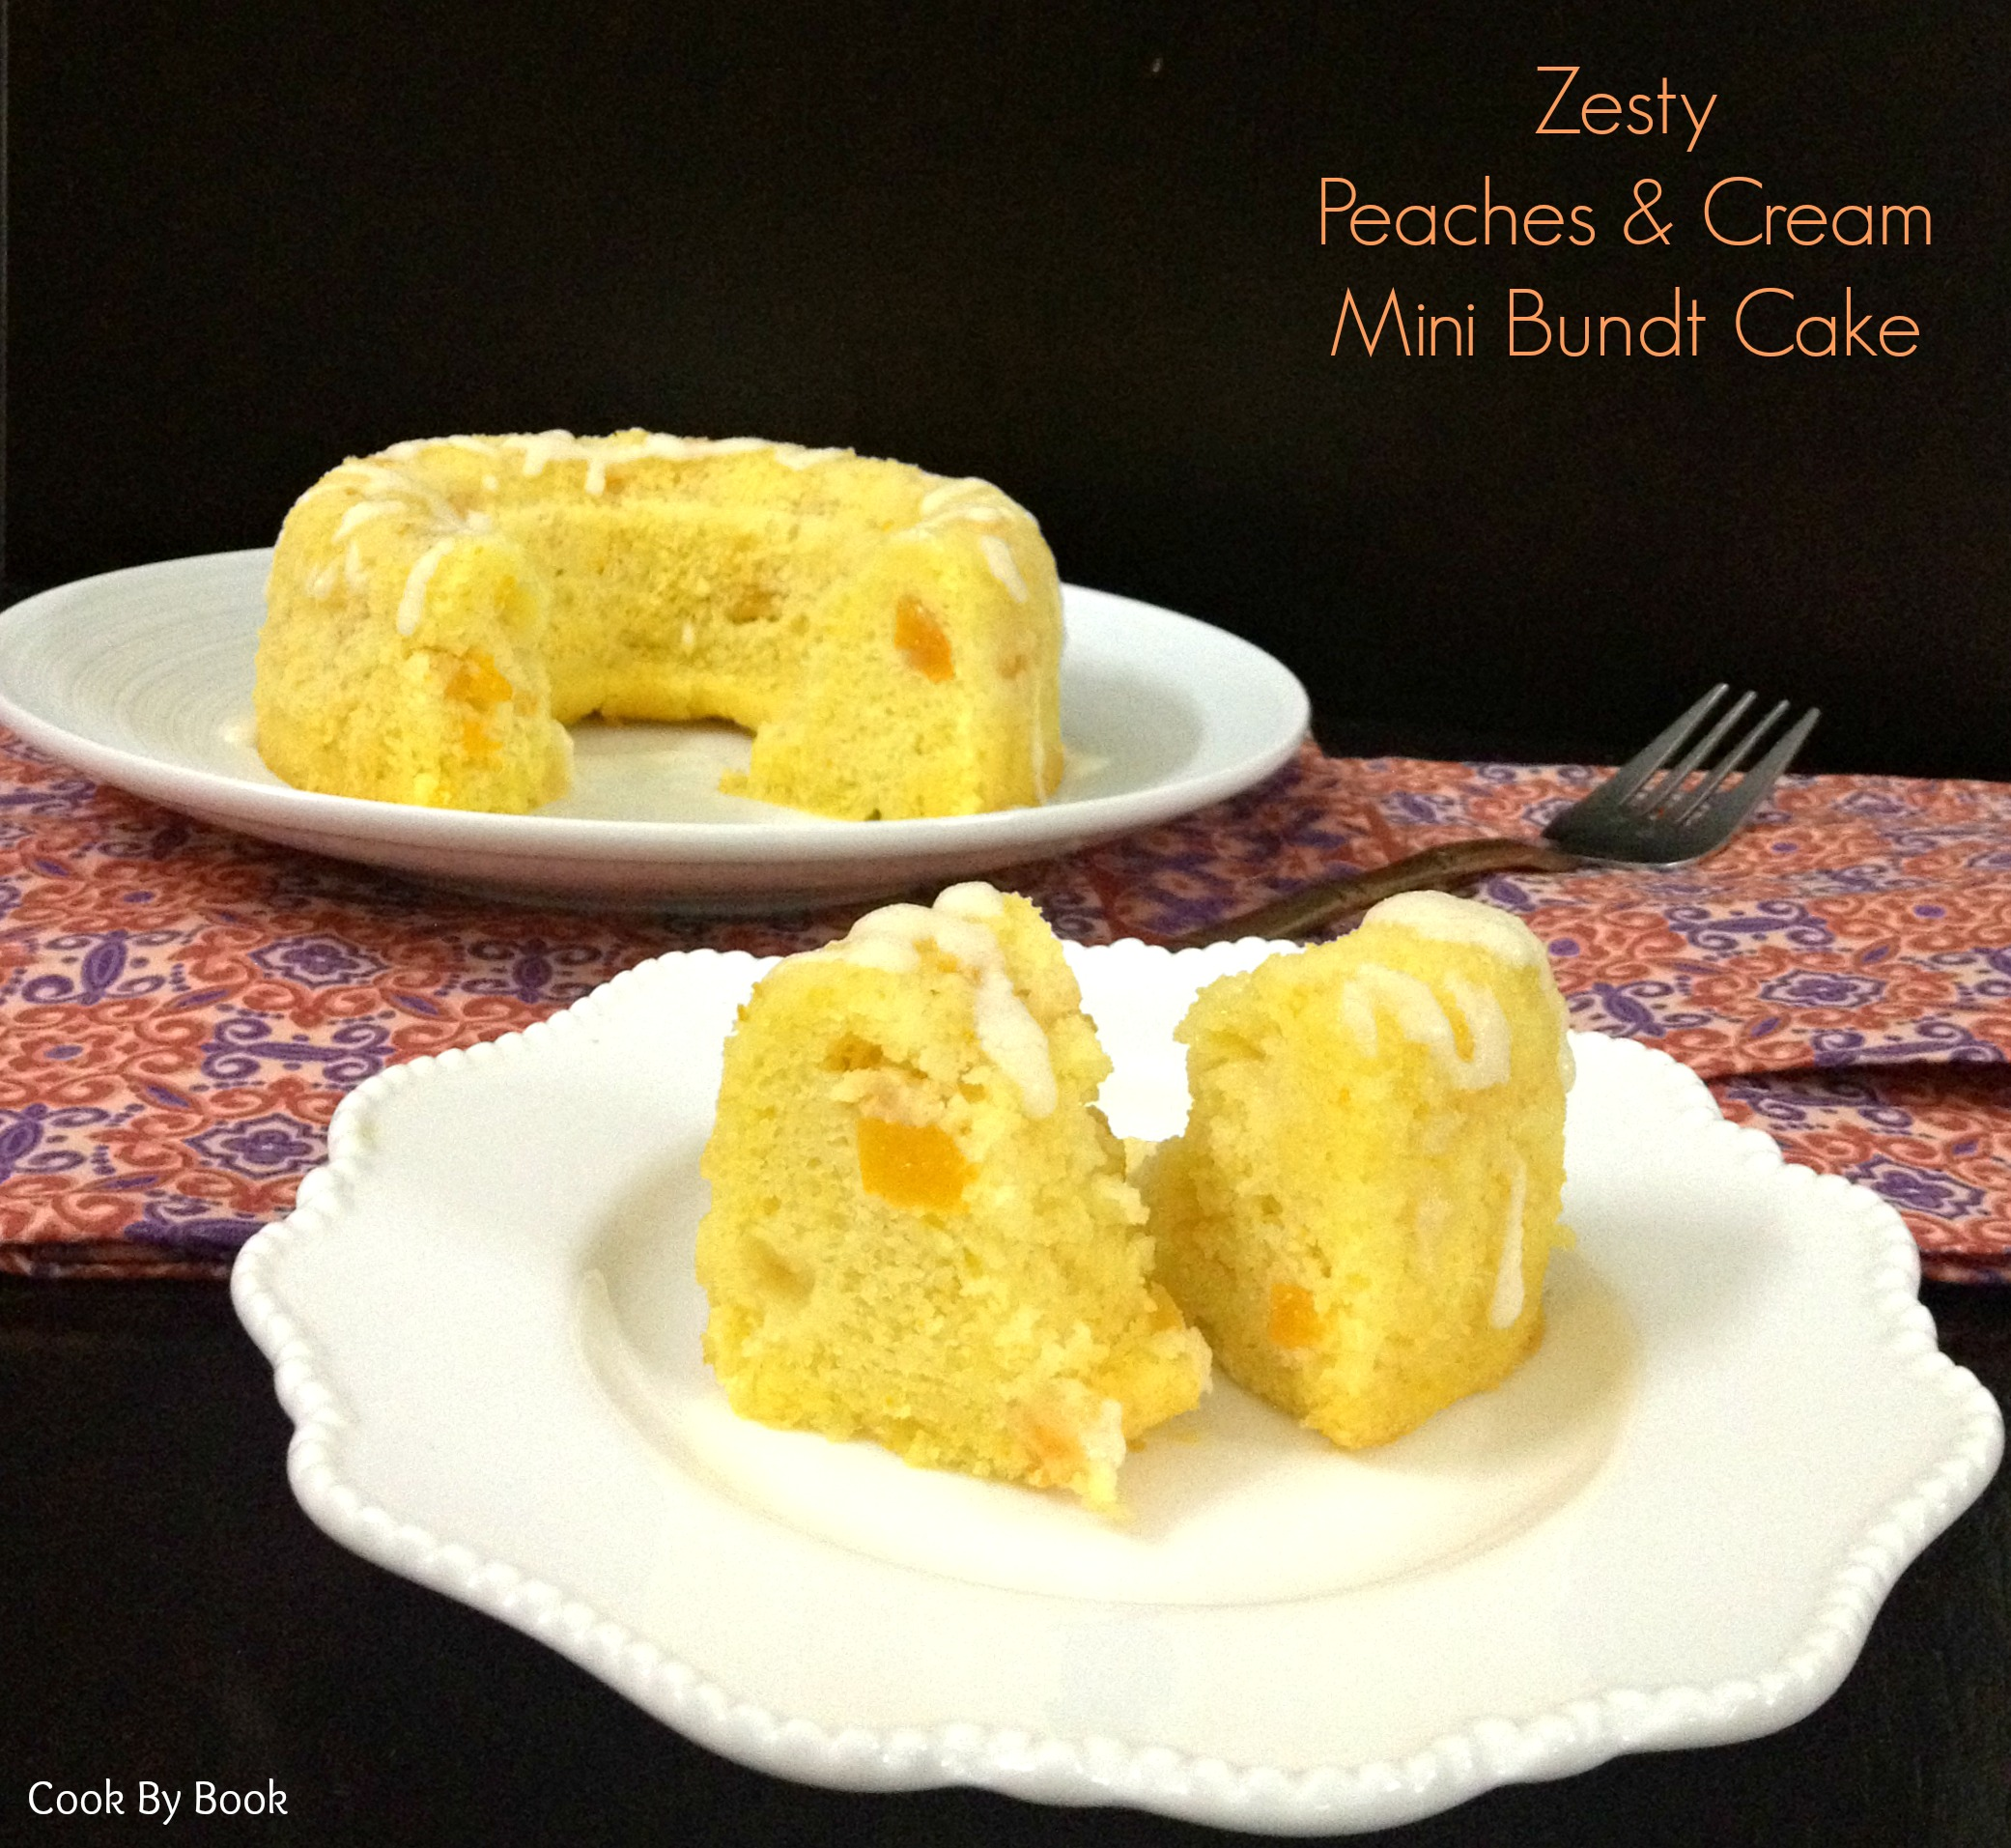 Zesty Peaches & Cream Mini Bundt Cake4